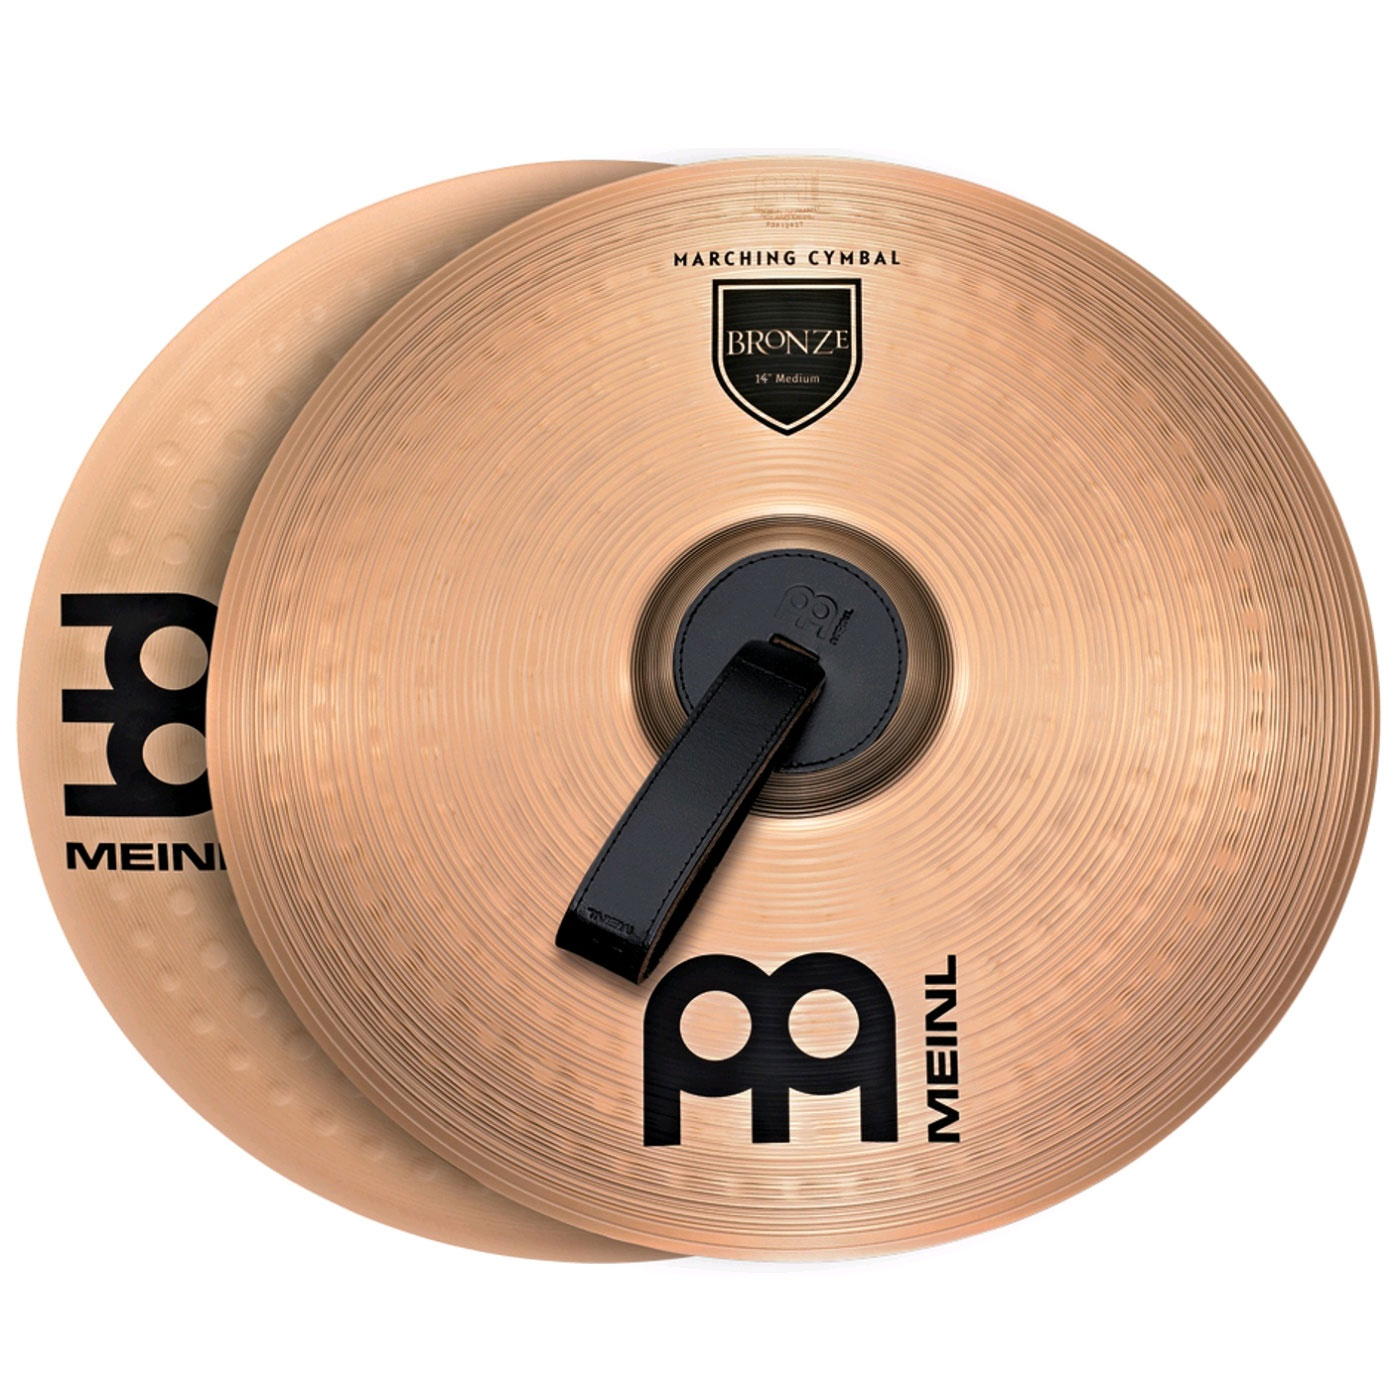 "Meinl 14"" Medium B8 Student Marching Cymbals Pair"